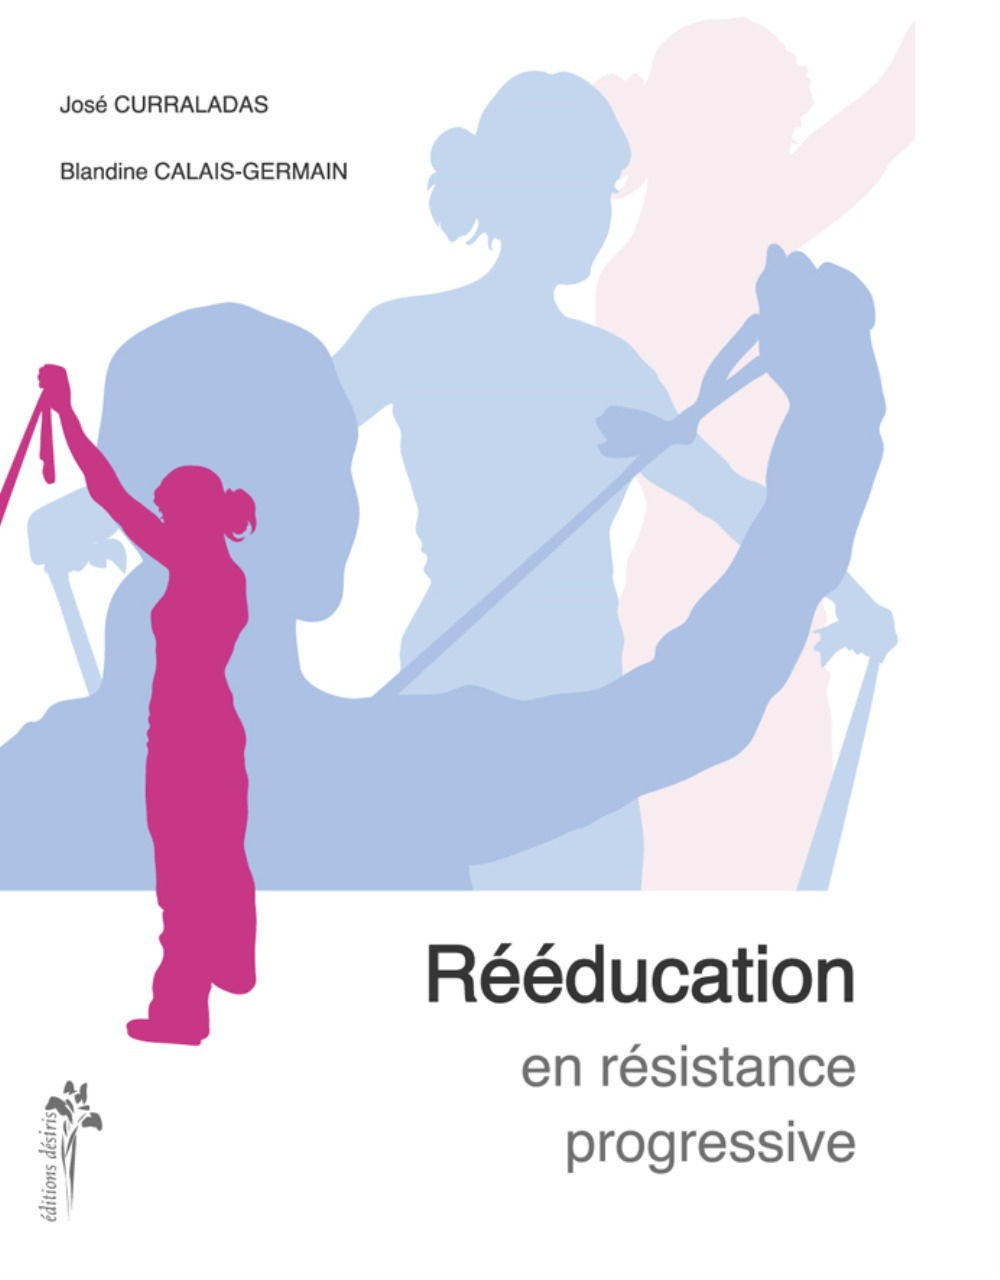 REEDUCATION EN RESISTANCE PROGRESSIVE